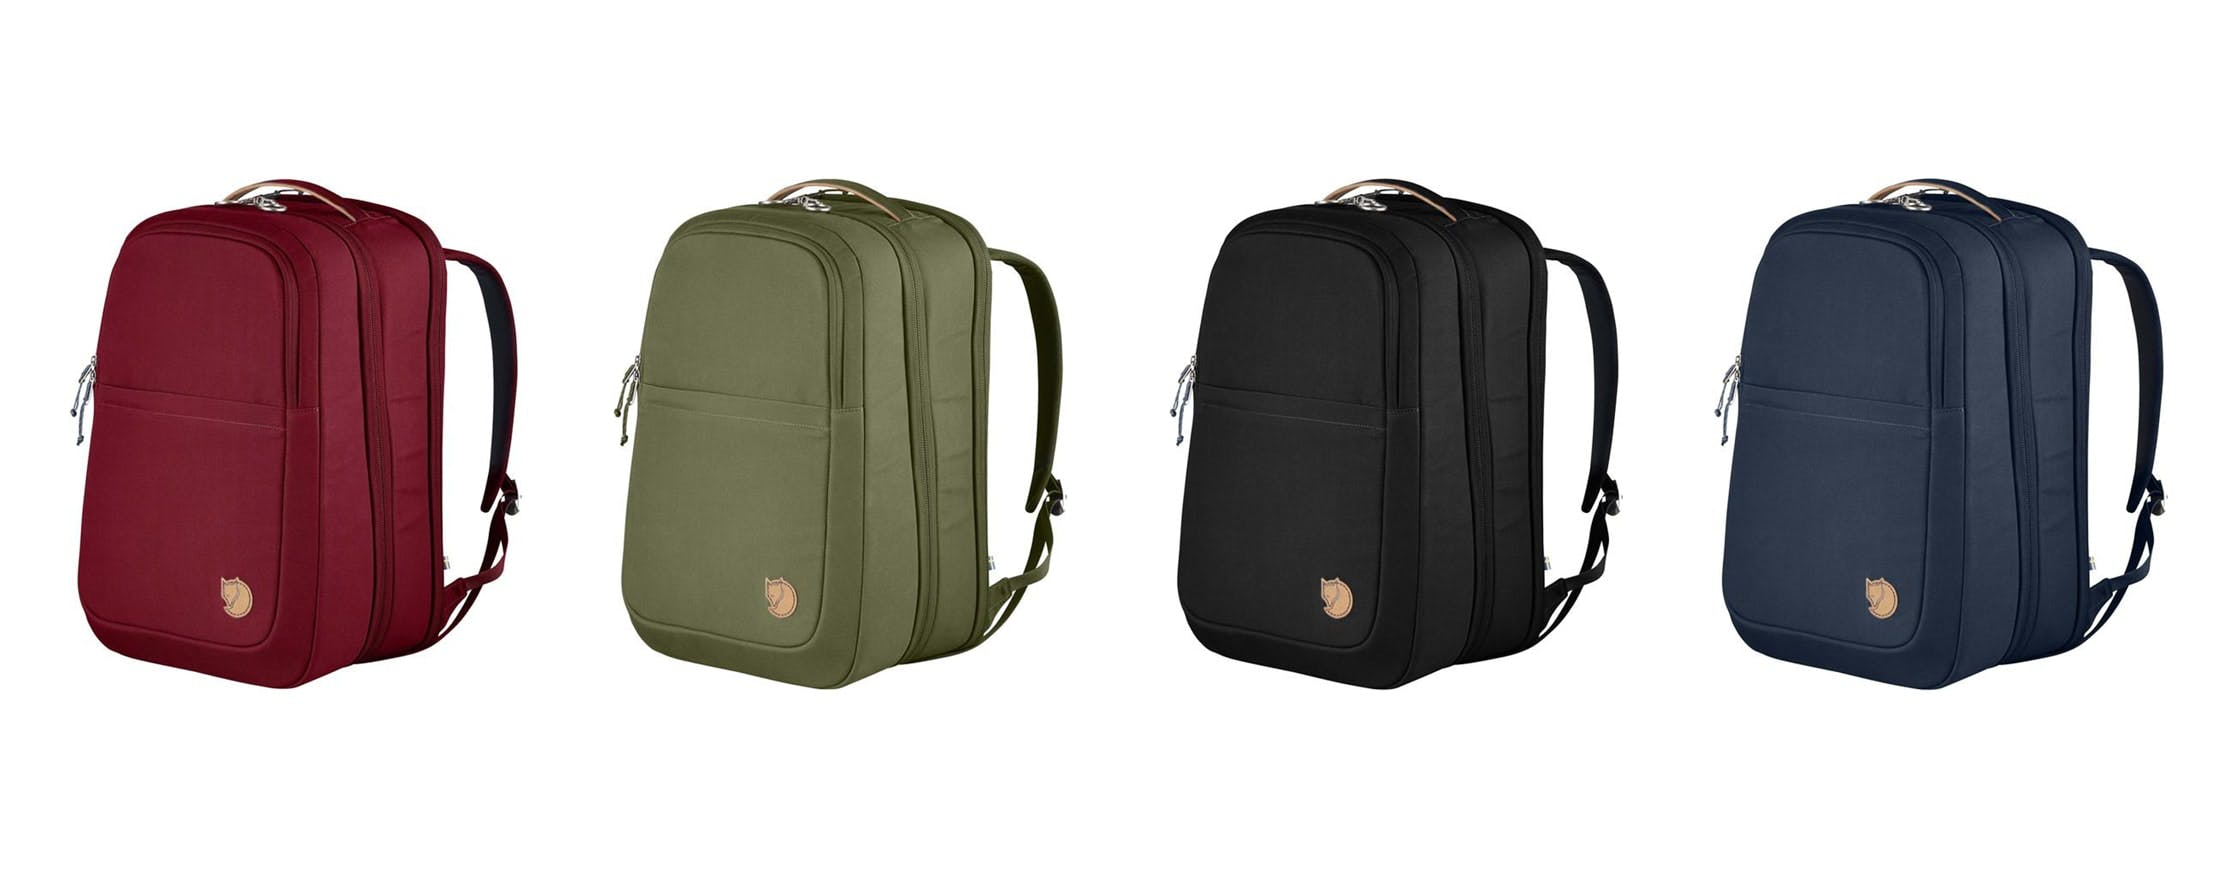 Fjallraven Travel Pack Different Color Options